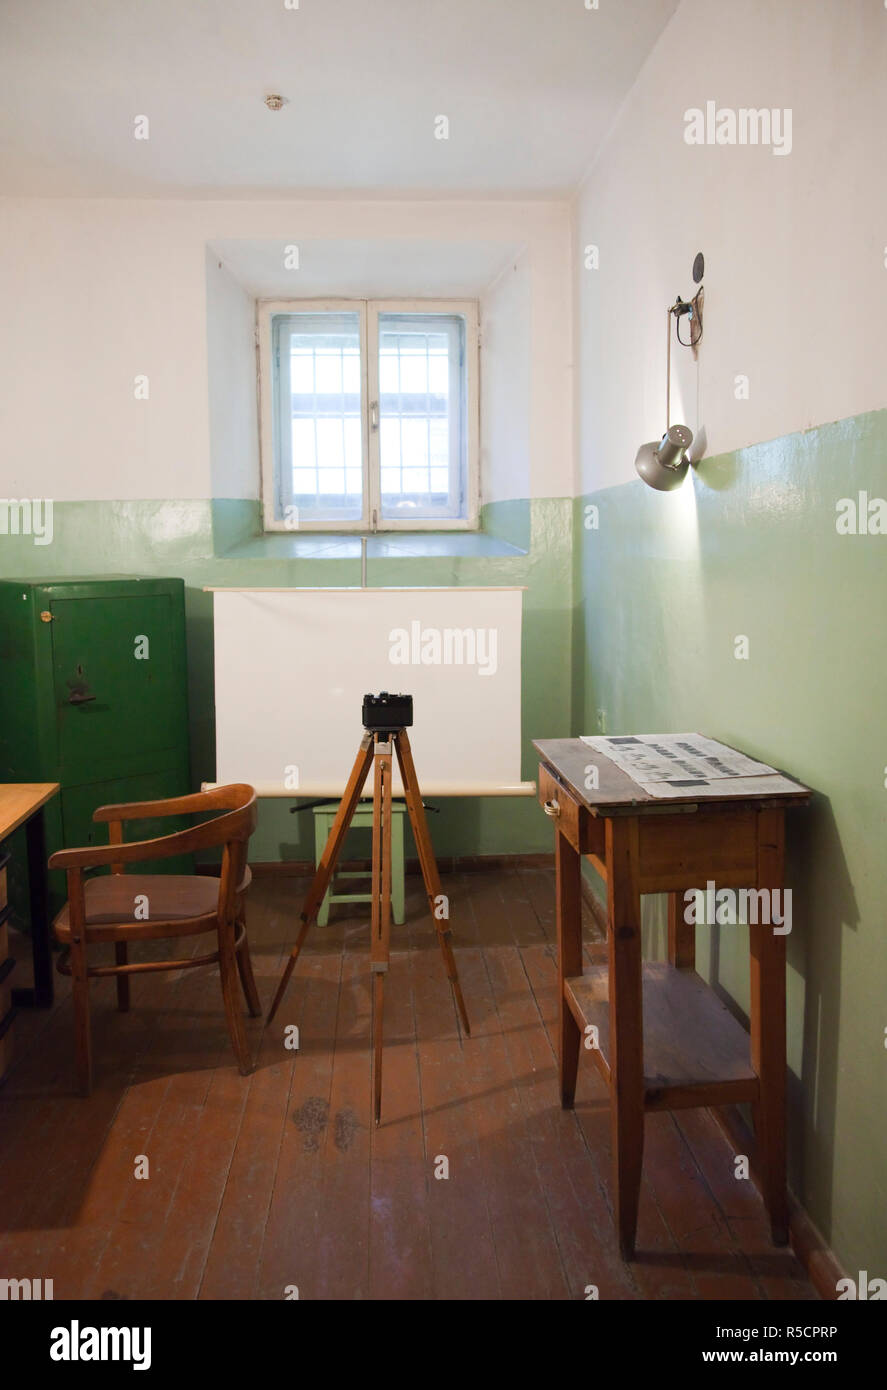 Lithuania, Vilnius, Museum of Genocide Victims, former KGB headquarters, photography area - Stock Image